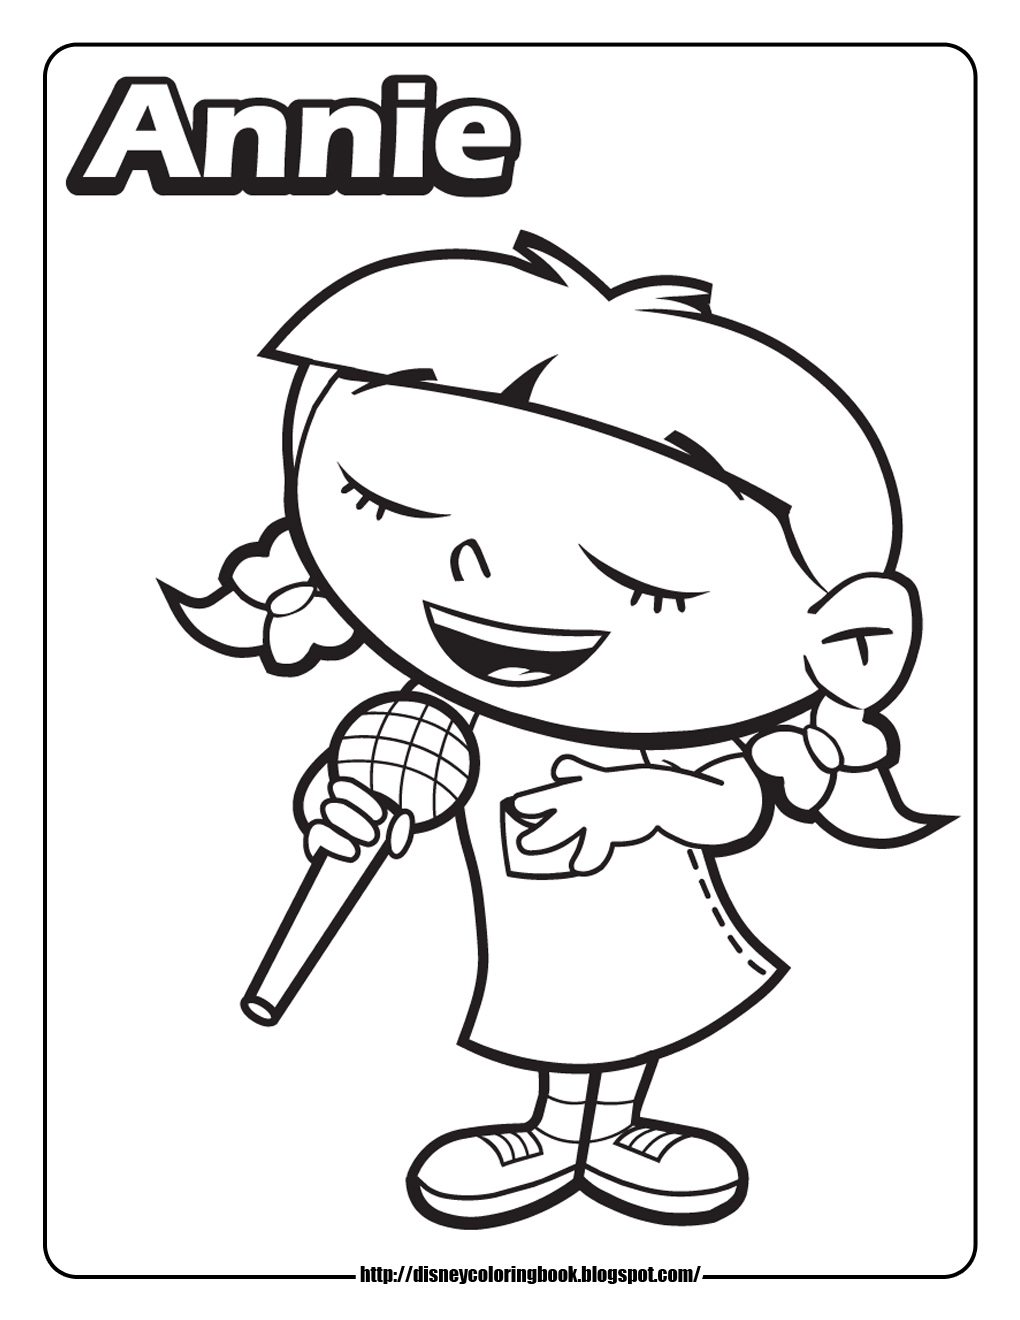 June Printable Coloring Pages Printable Coloring Sheets